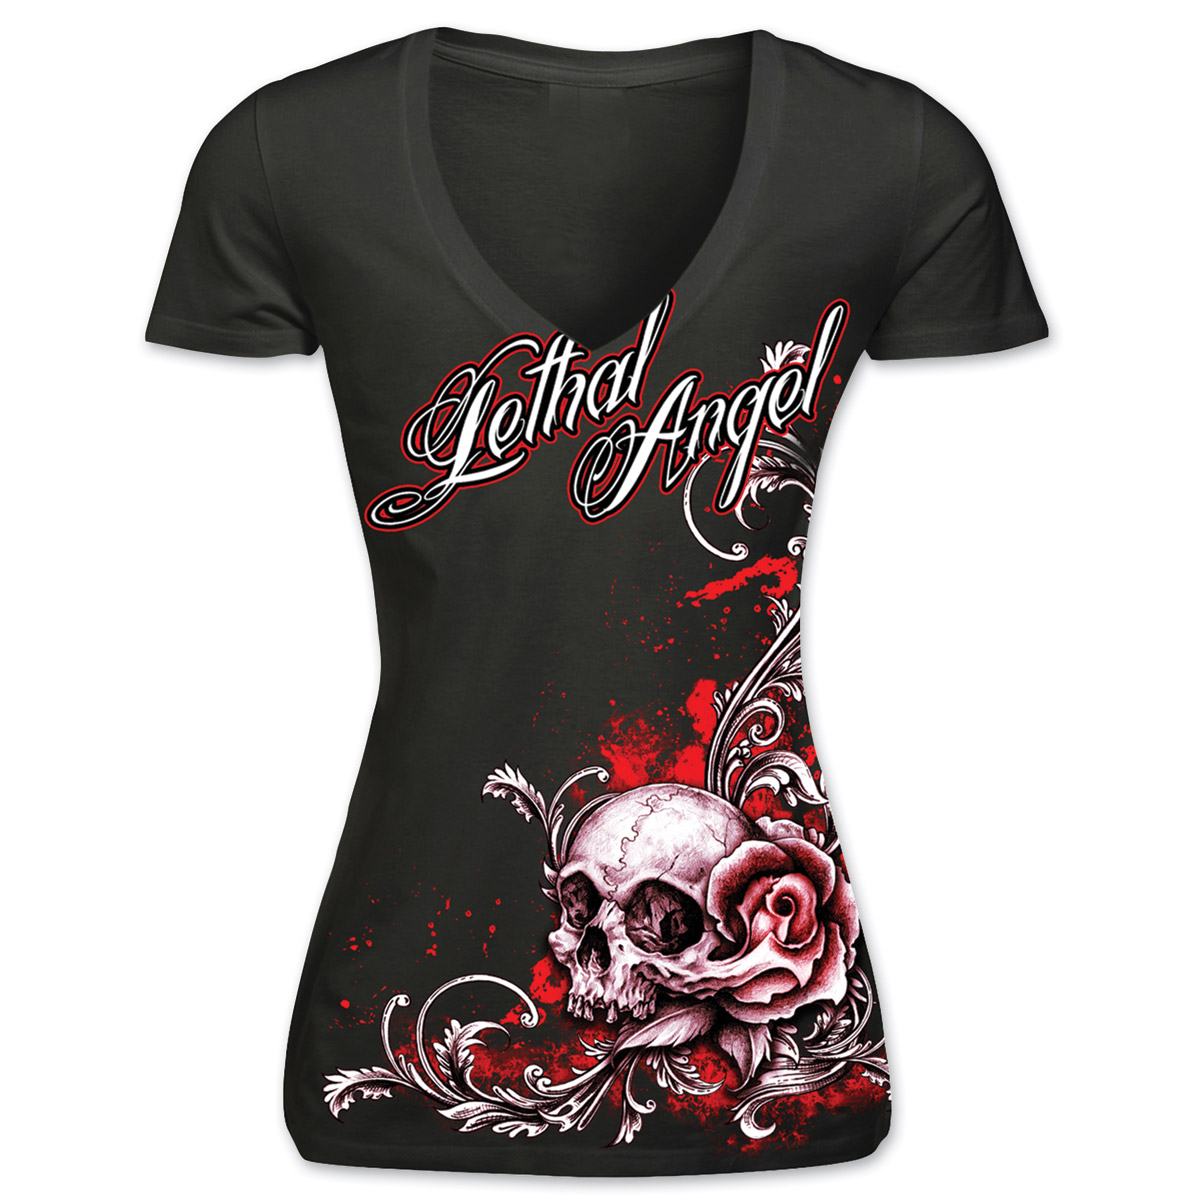 Lethal Threat Ladies Lethal Angel Deep V-neck Black T-shirt